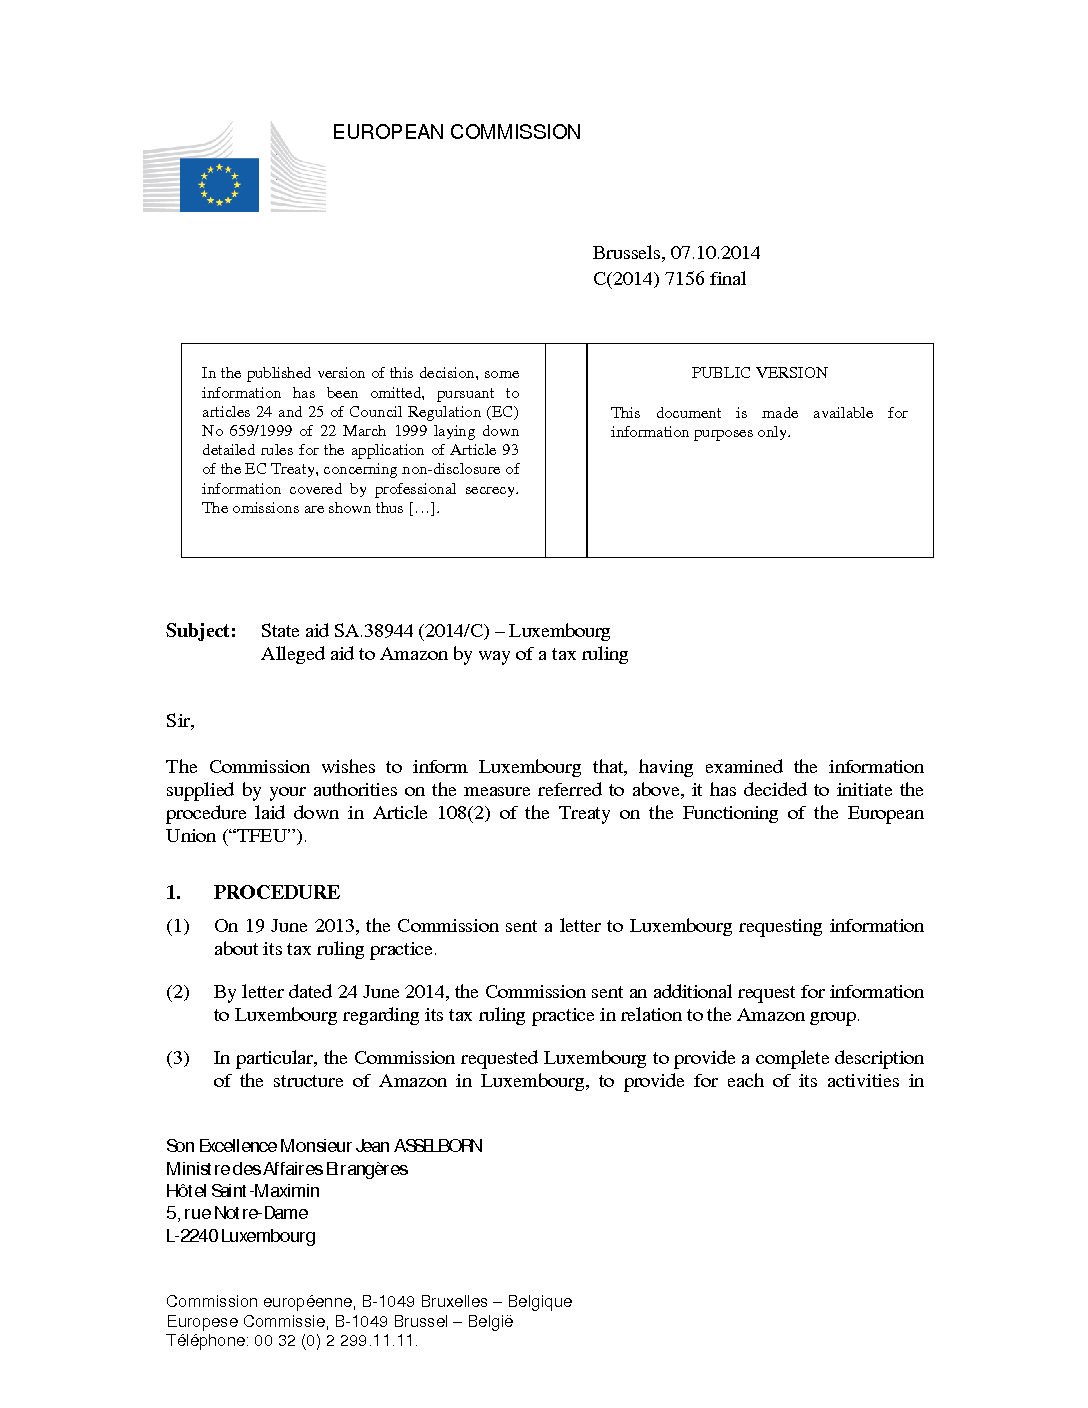 European Commission opens investigation of transfer pricing arrangements on corporate taxation of Amazon in Luxembourg, October 2014